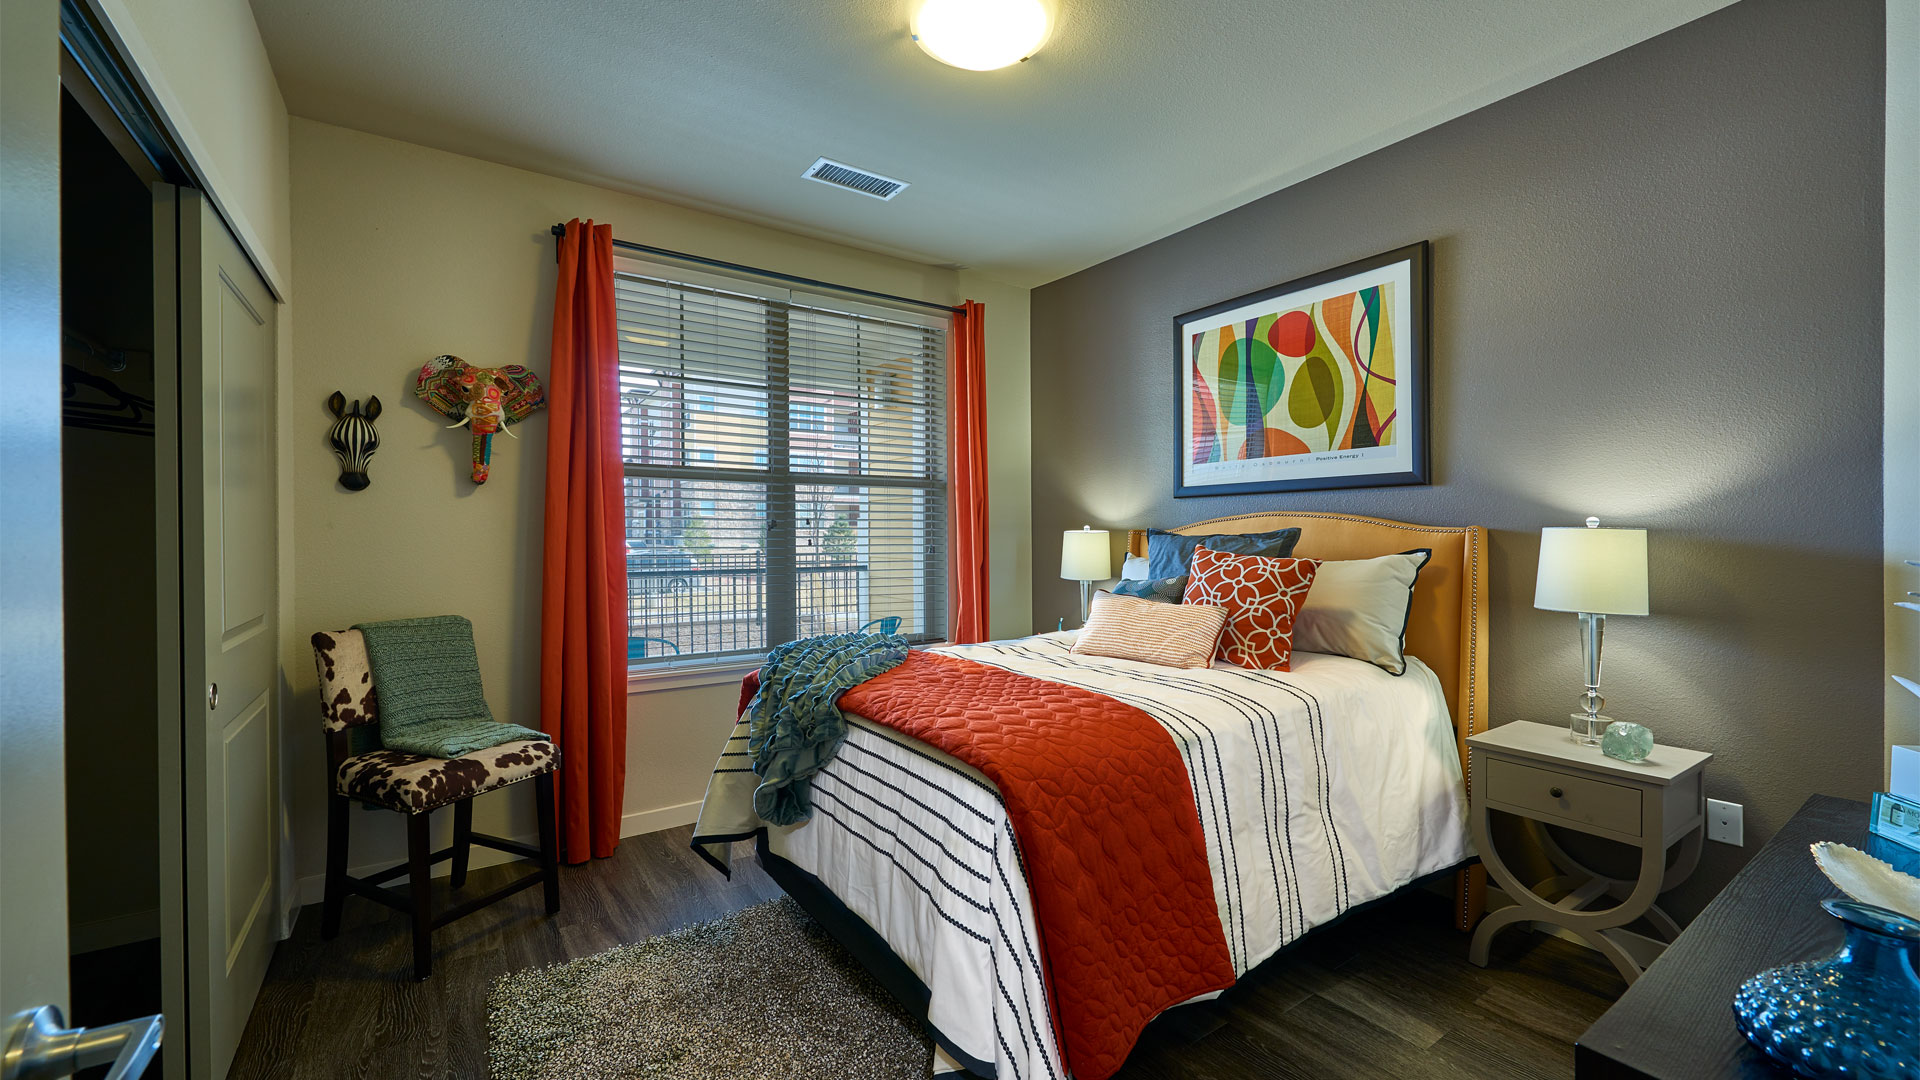 Hiline at littleton commons one two three bedroom - 3 bedroom apartments in littleton co ...